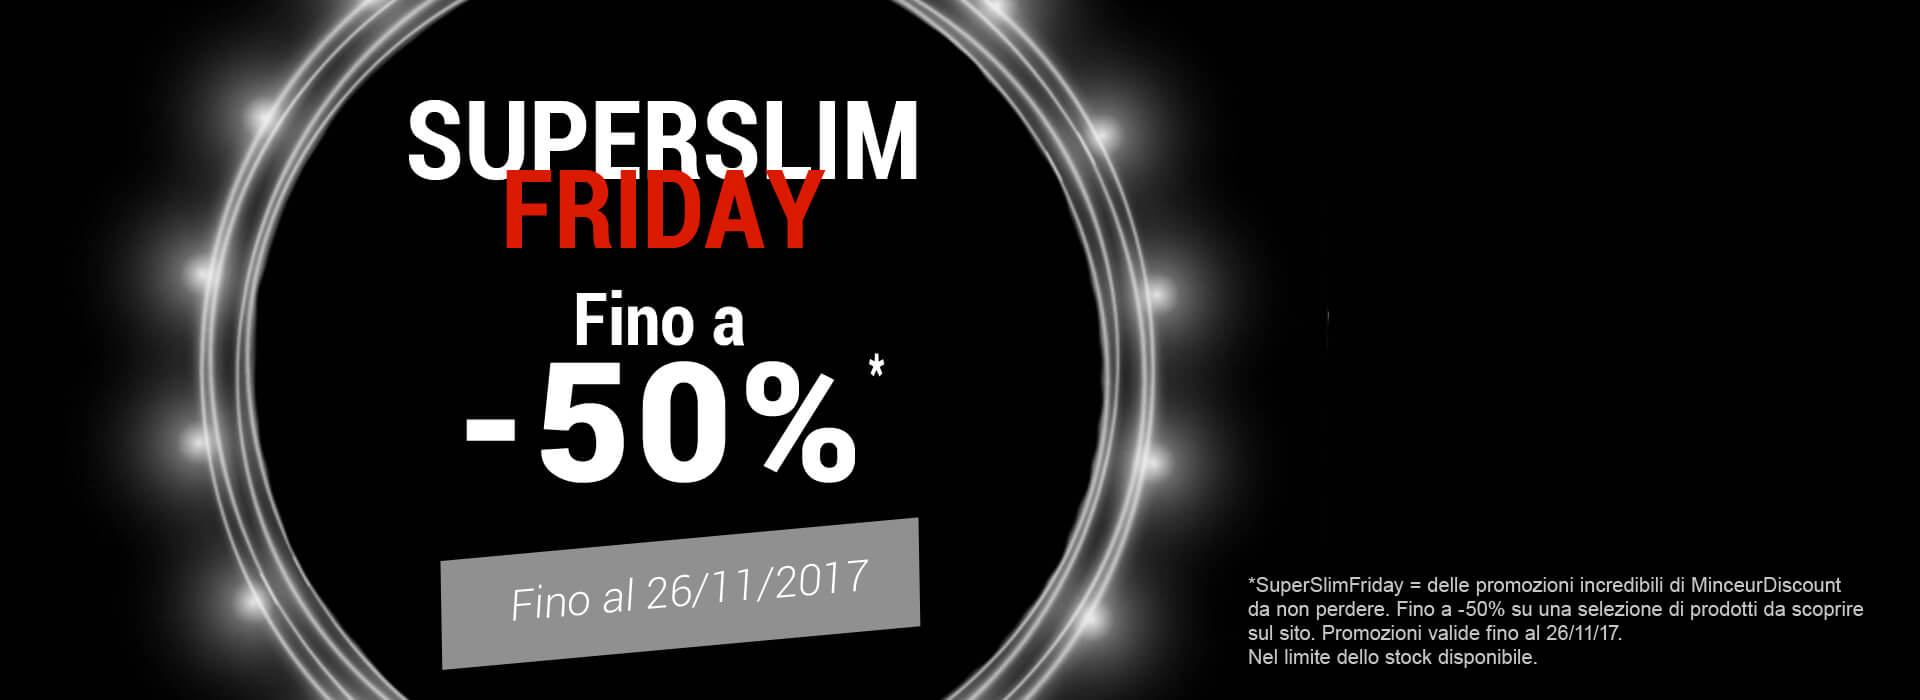 SuperSlimFriday